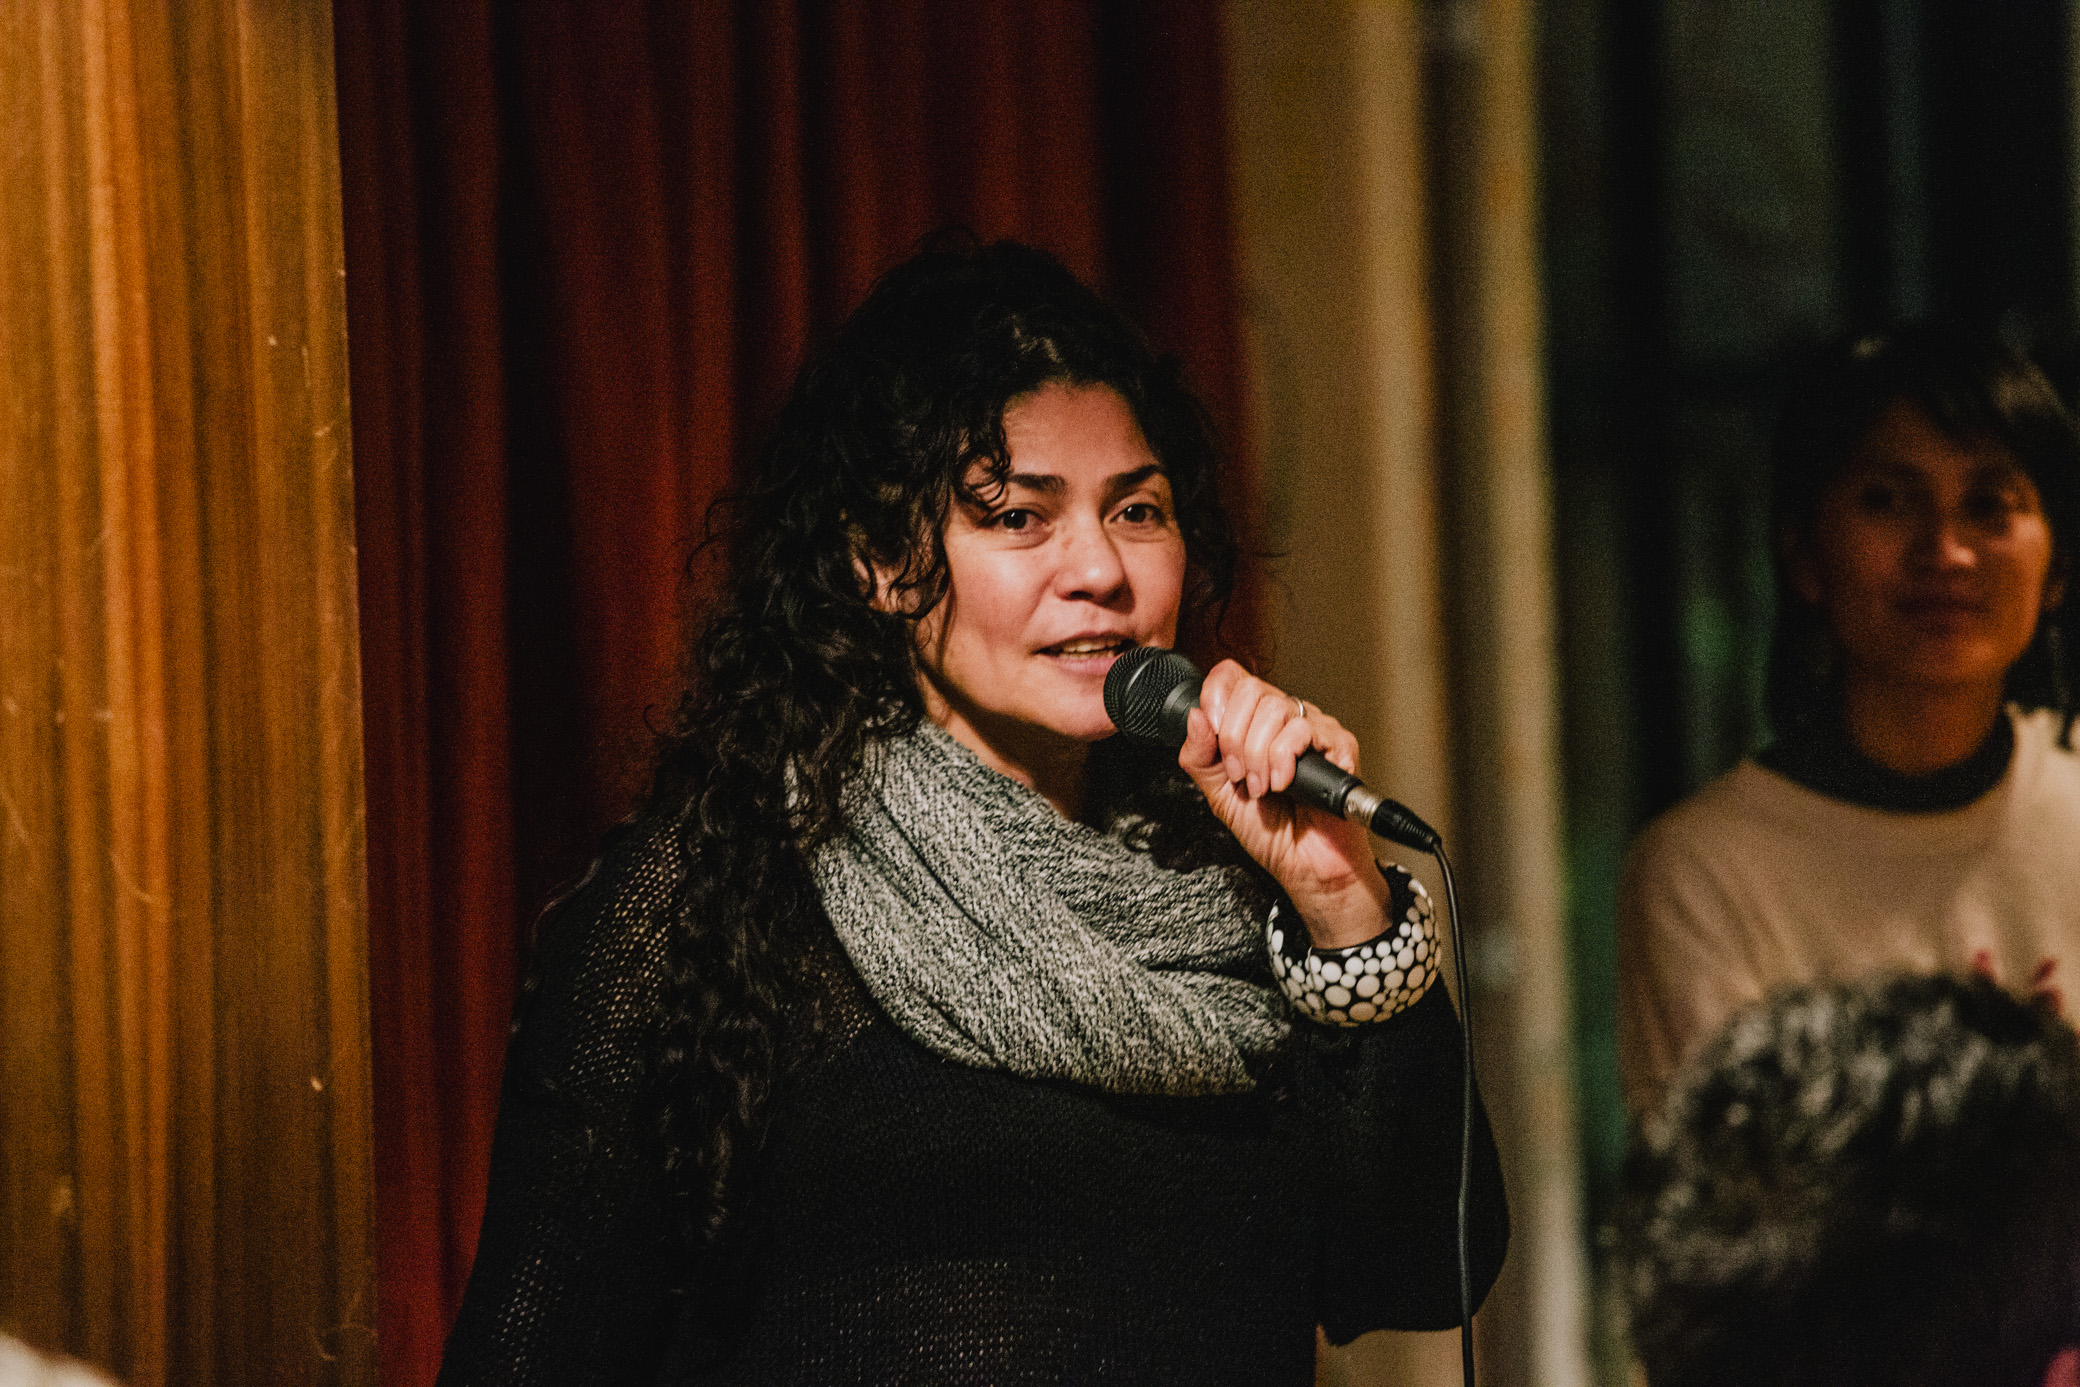 image of a person holding a mic